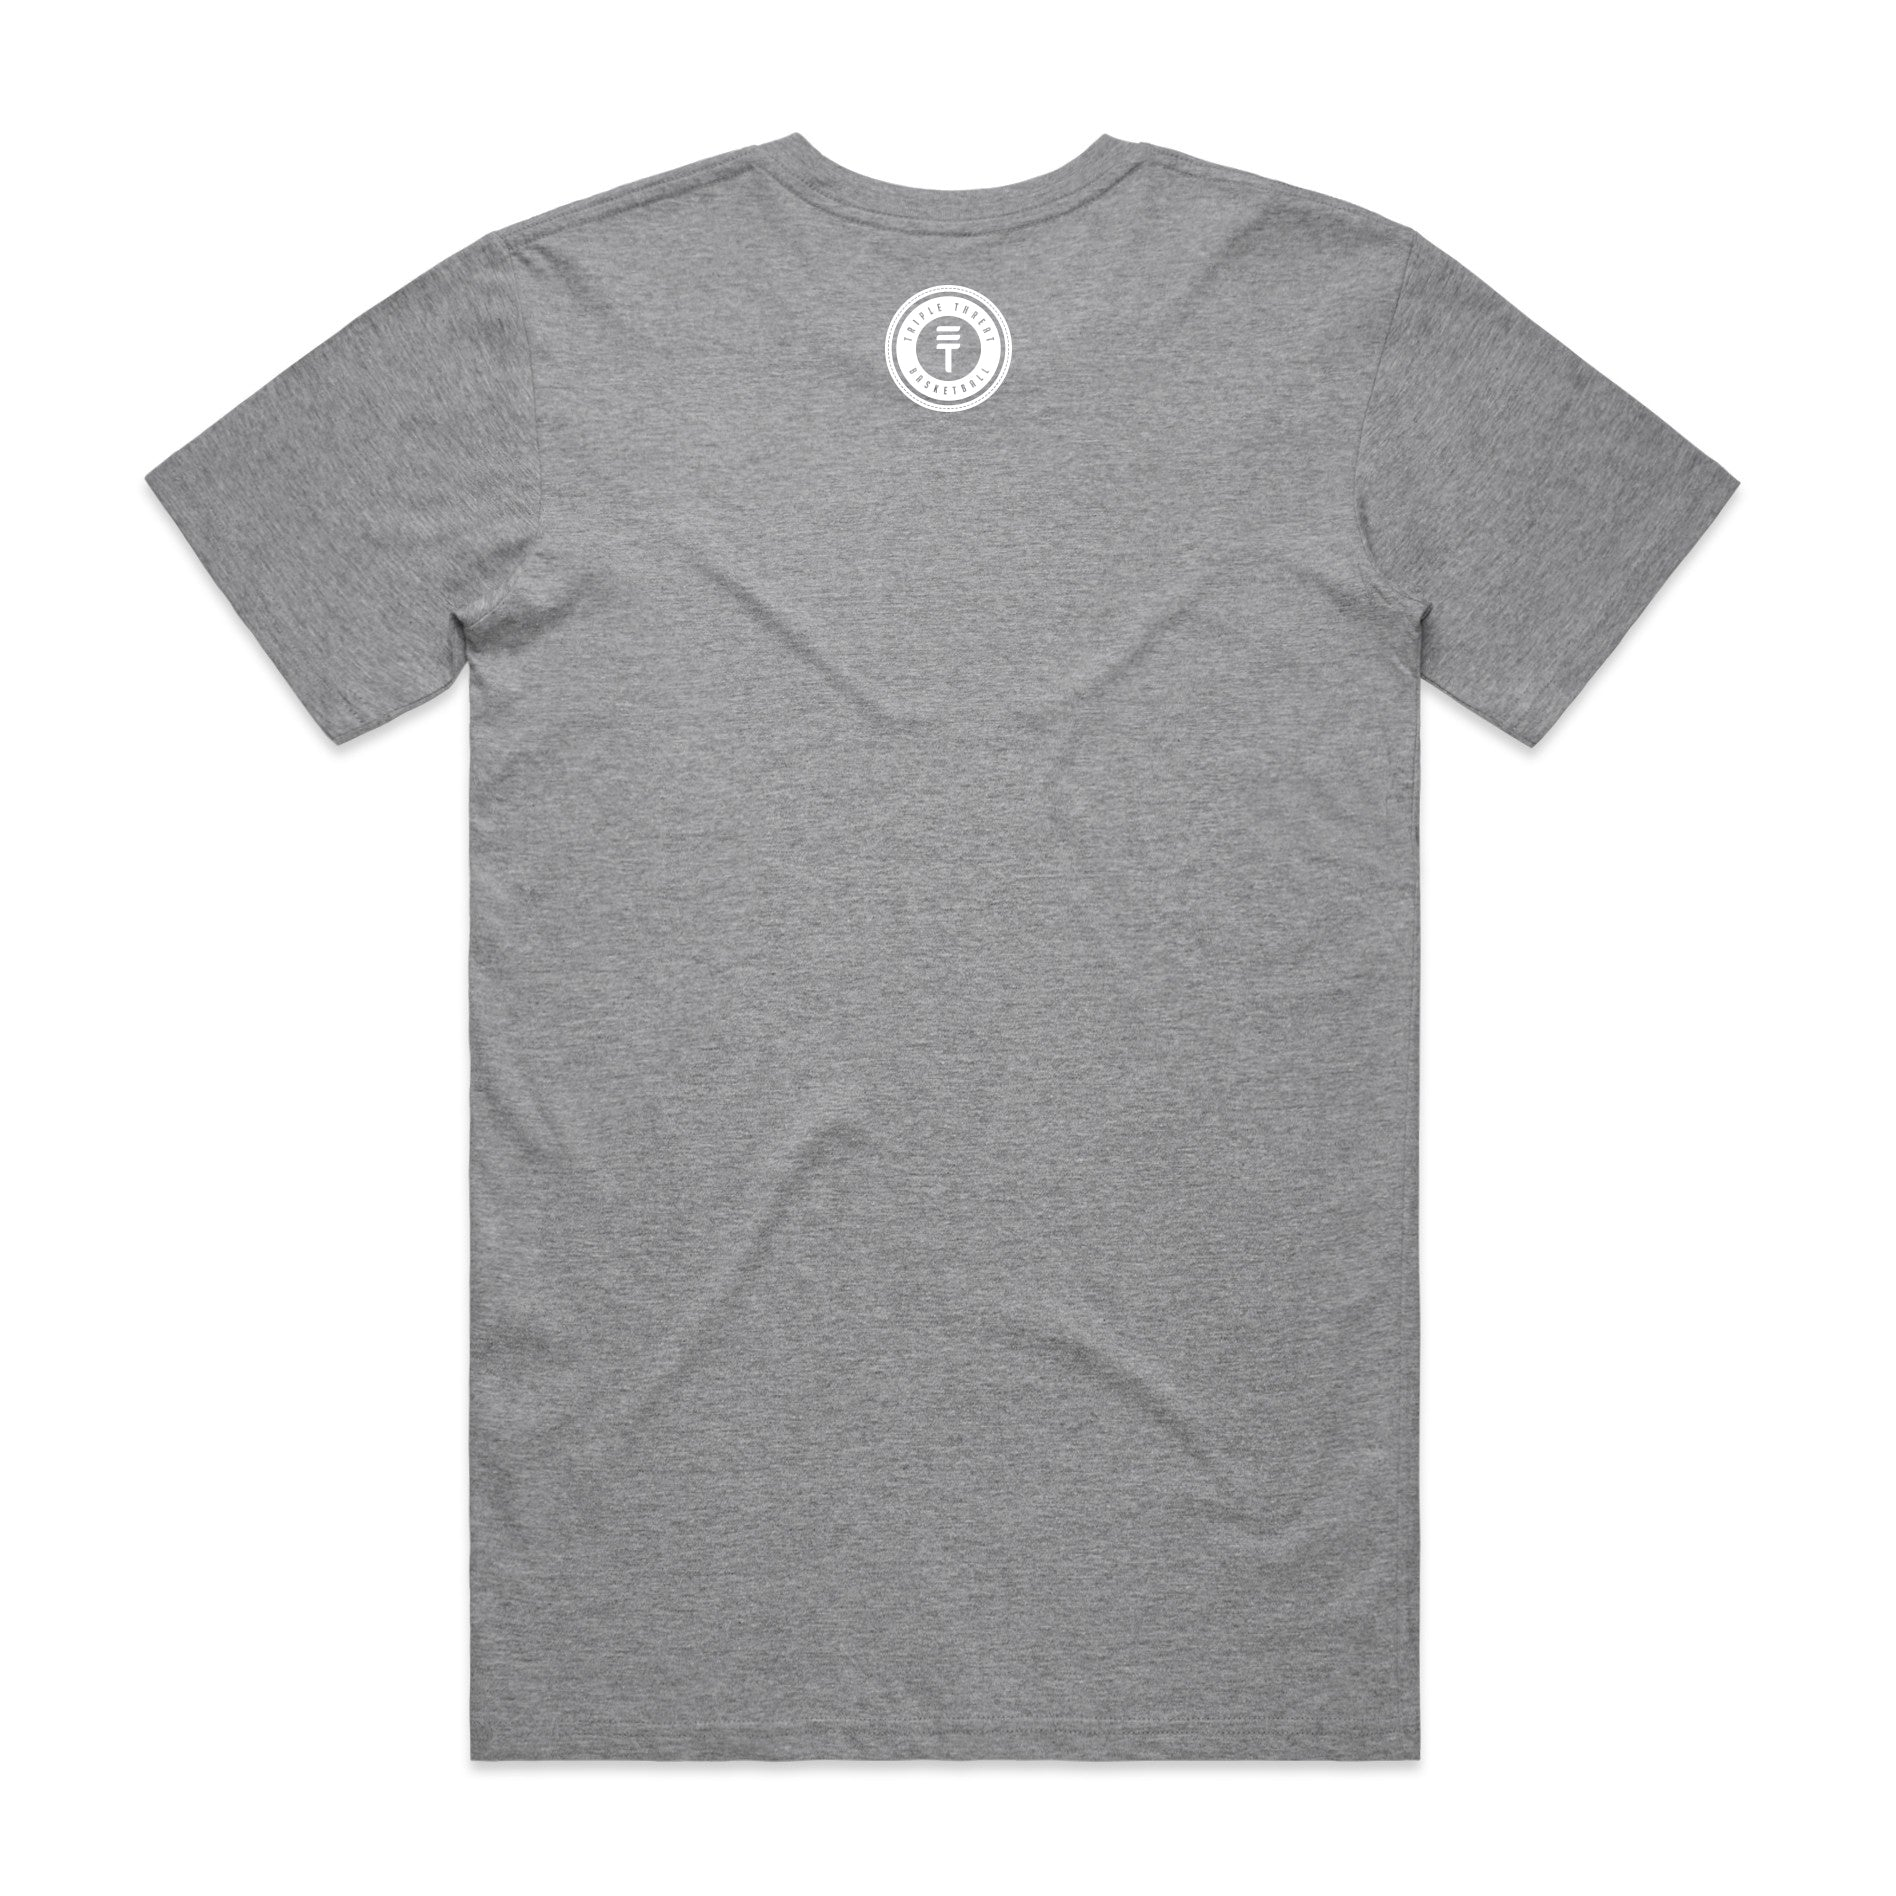 FLAG T-SHIRT - GREY